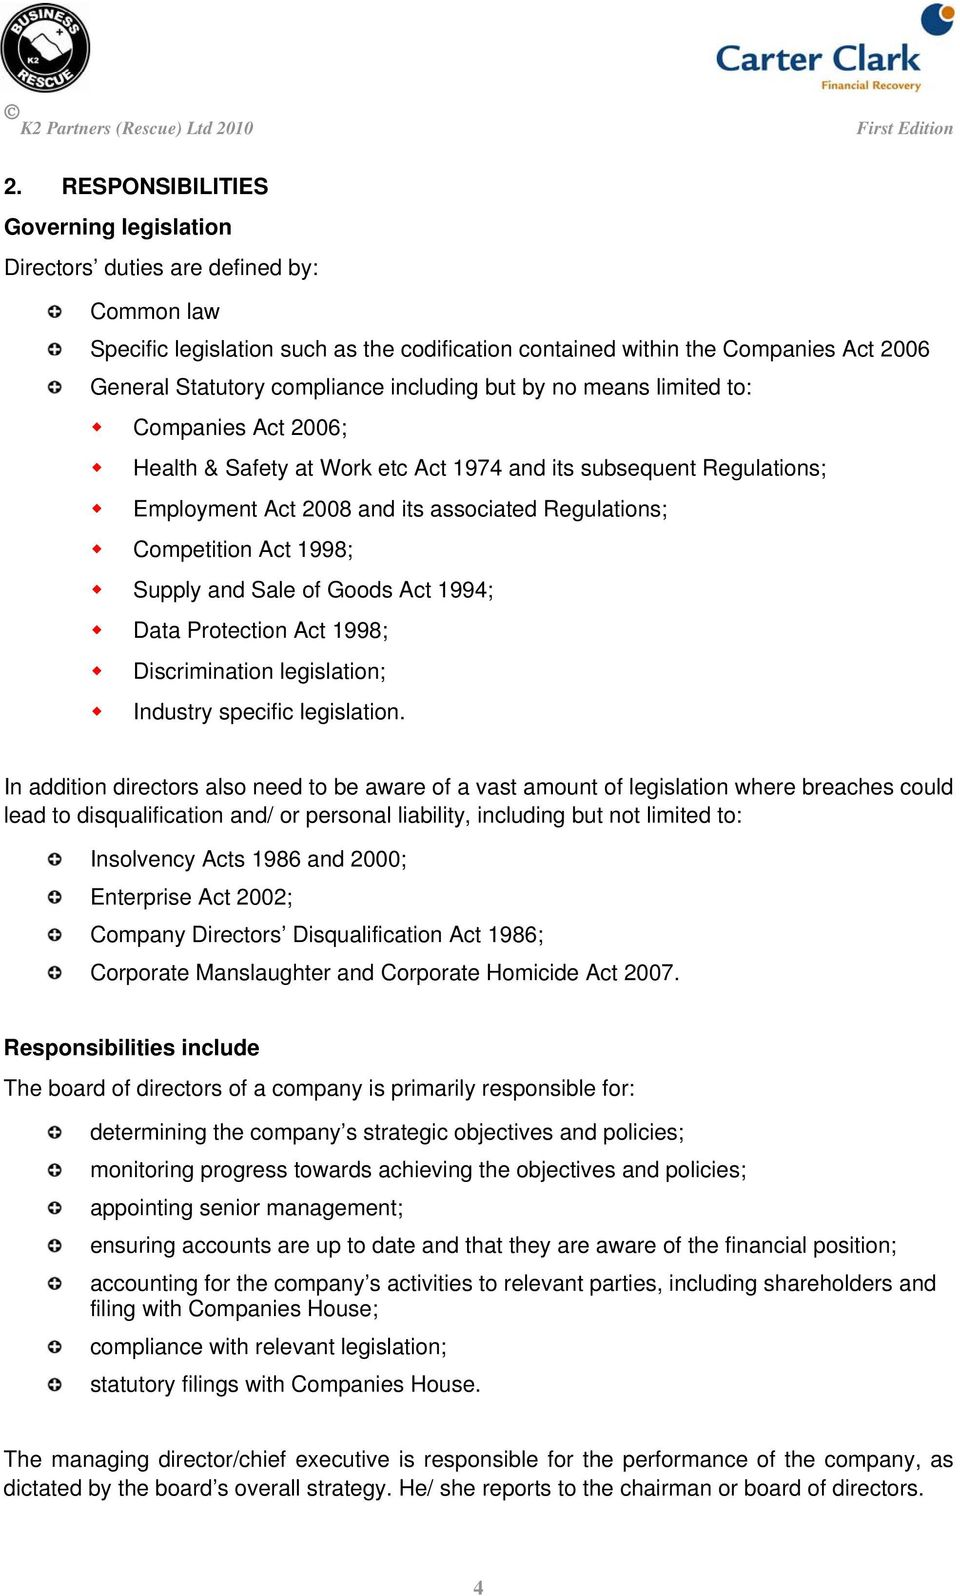 Competition Act 1998; Supply and Sale of Goods Act 1994; Data Protection Act 1998; Discrimination legislation; Industry specific legislation.